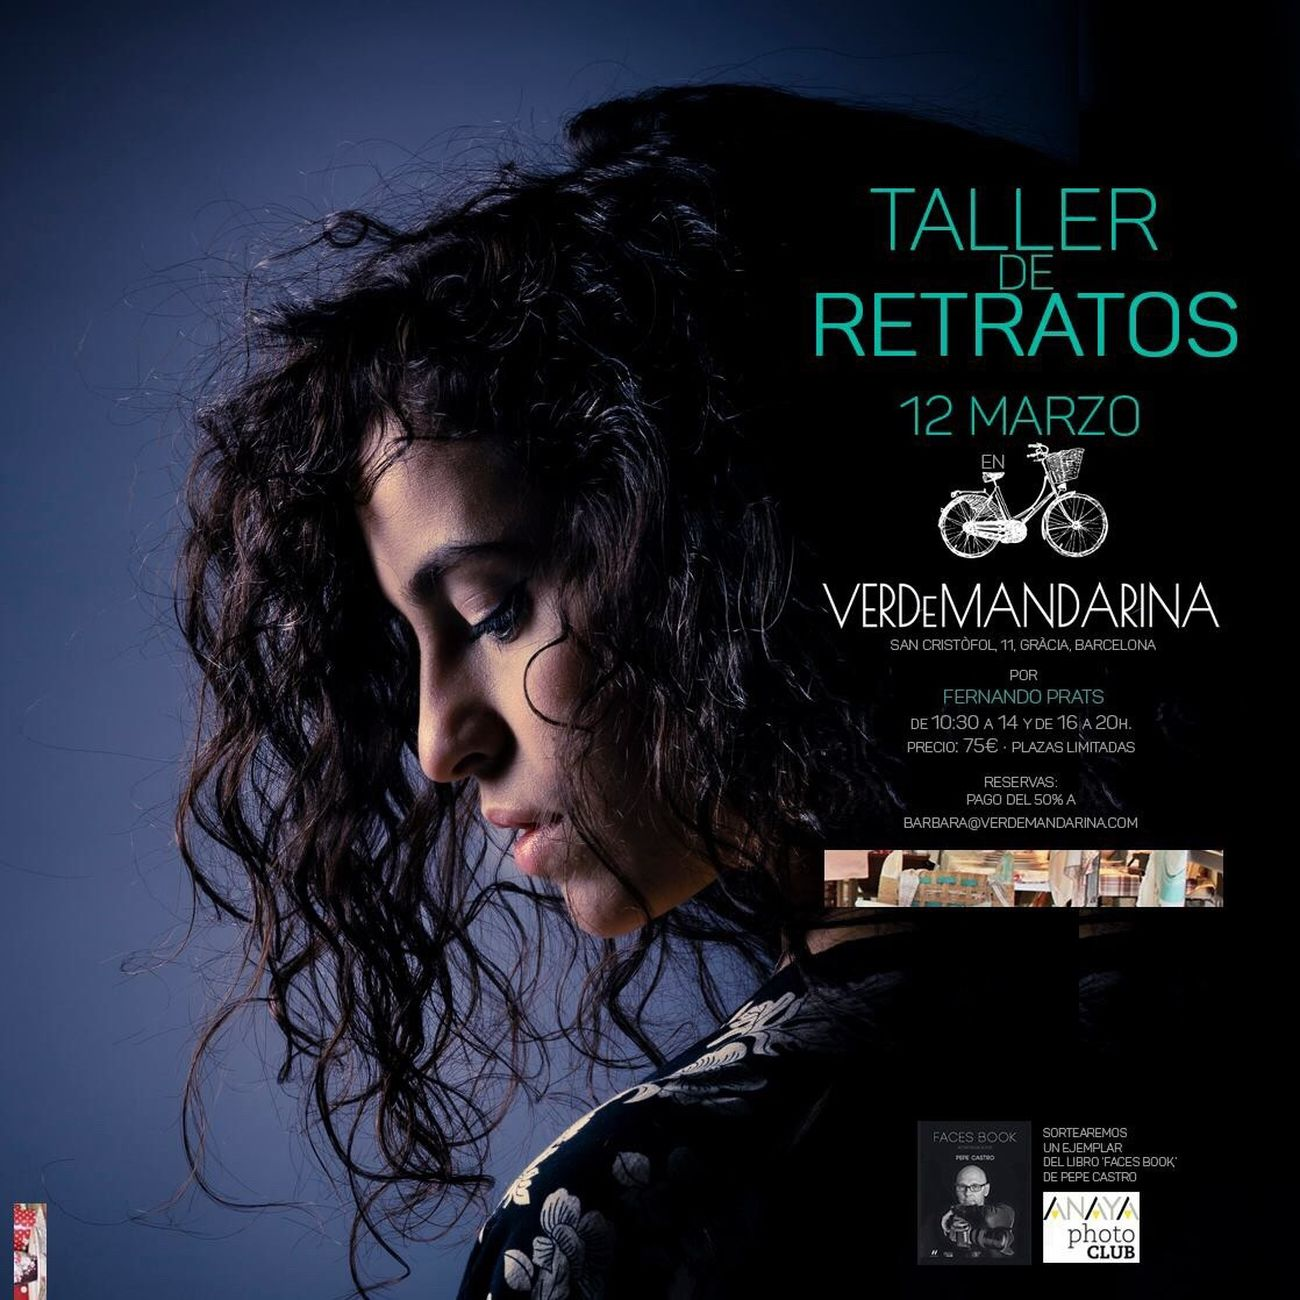 Portrait Photography Workshop • Taller de Retratos: 12/03/2016, VerdeMandarina (Gràcia, BCN) Portraits Workshop Barcelona